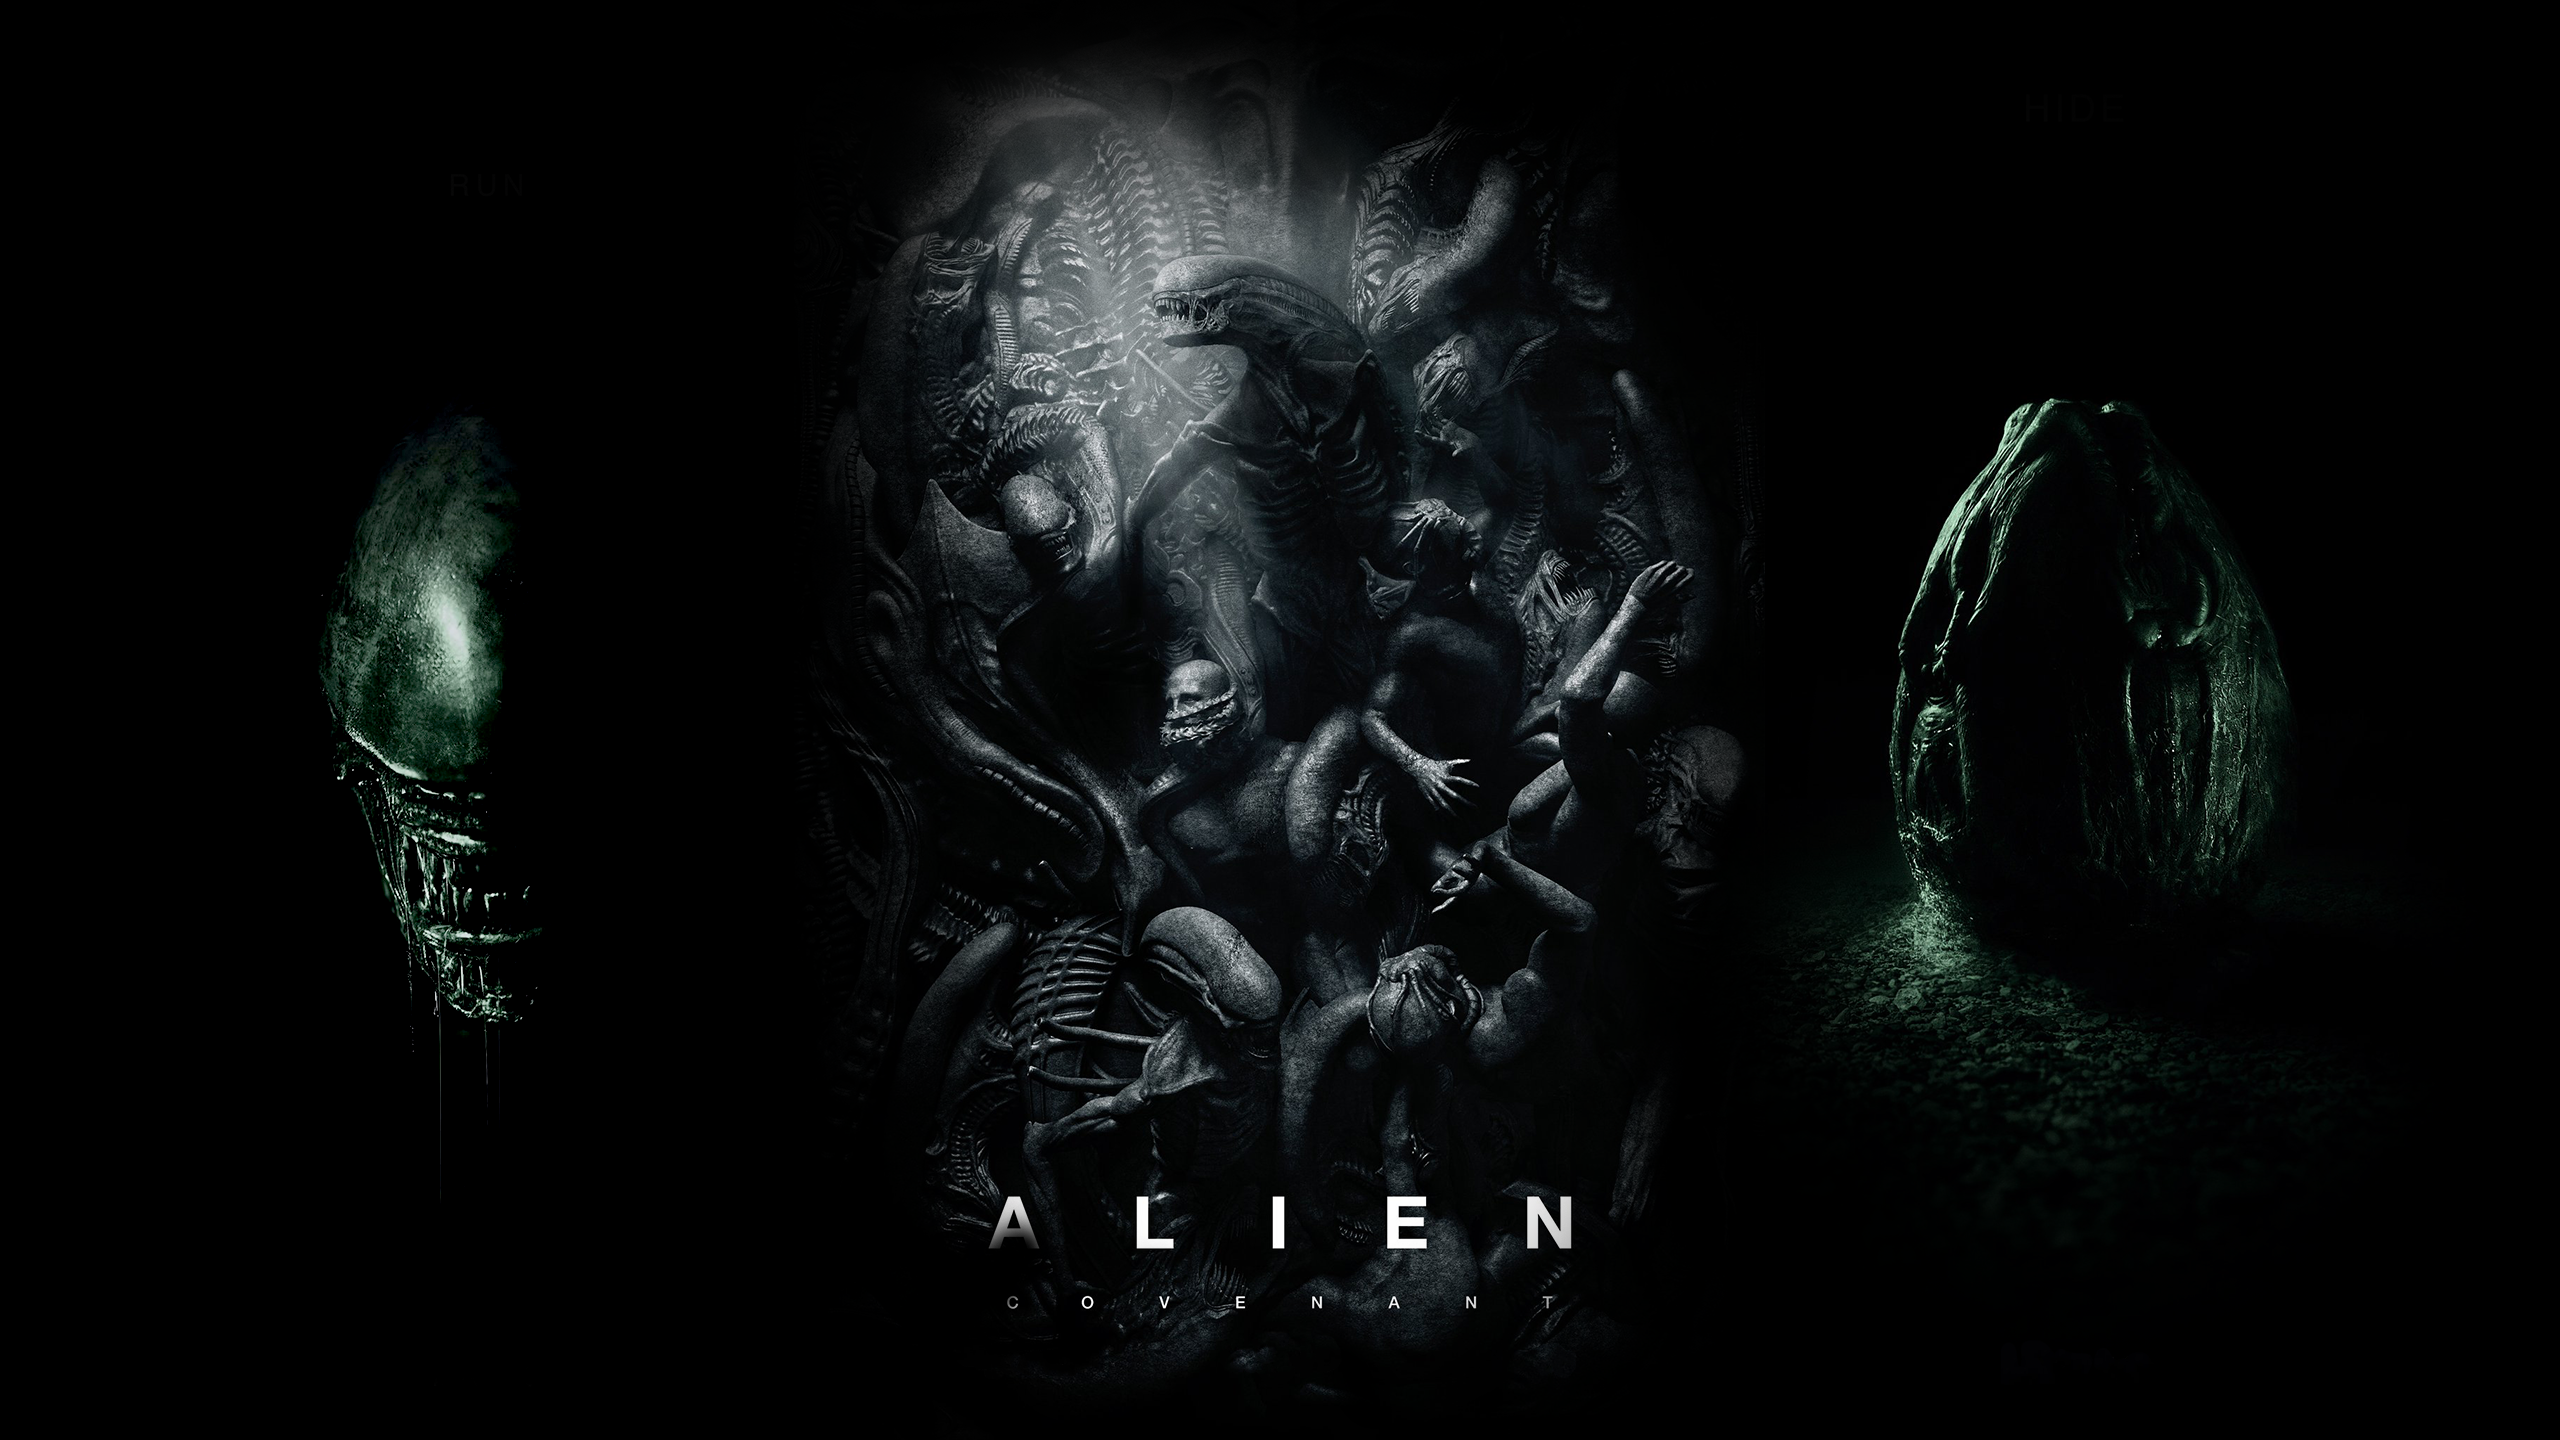 [2560x1440] Alien Covenant Alien, Hd wallpaper, Wallpaper